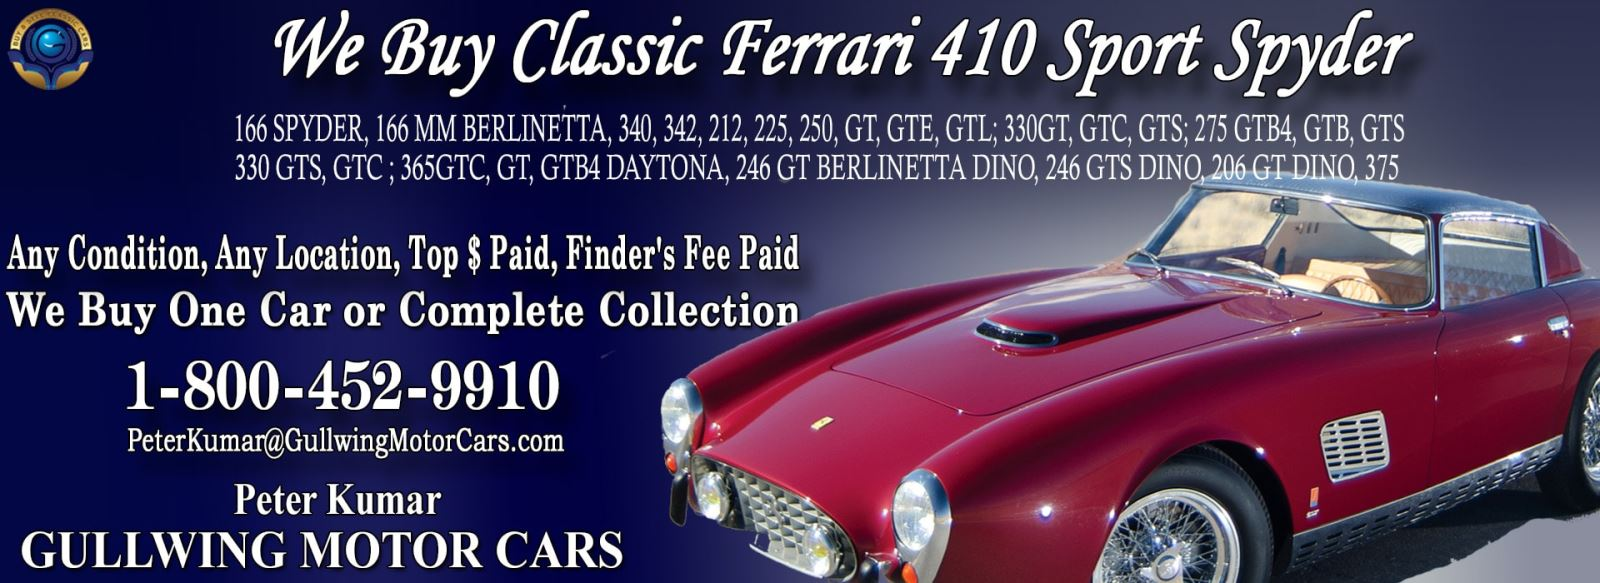 Classic Ferrari 410 for sale, we buy vintage Ferrari 410. Call Peter Kumar. Gullwing Motor